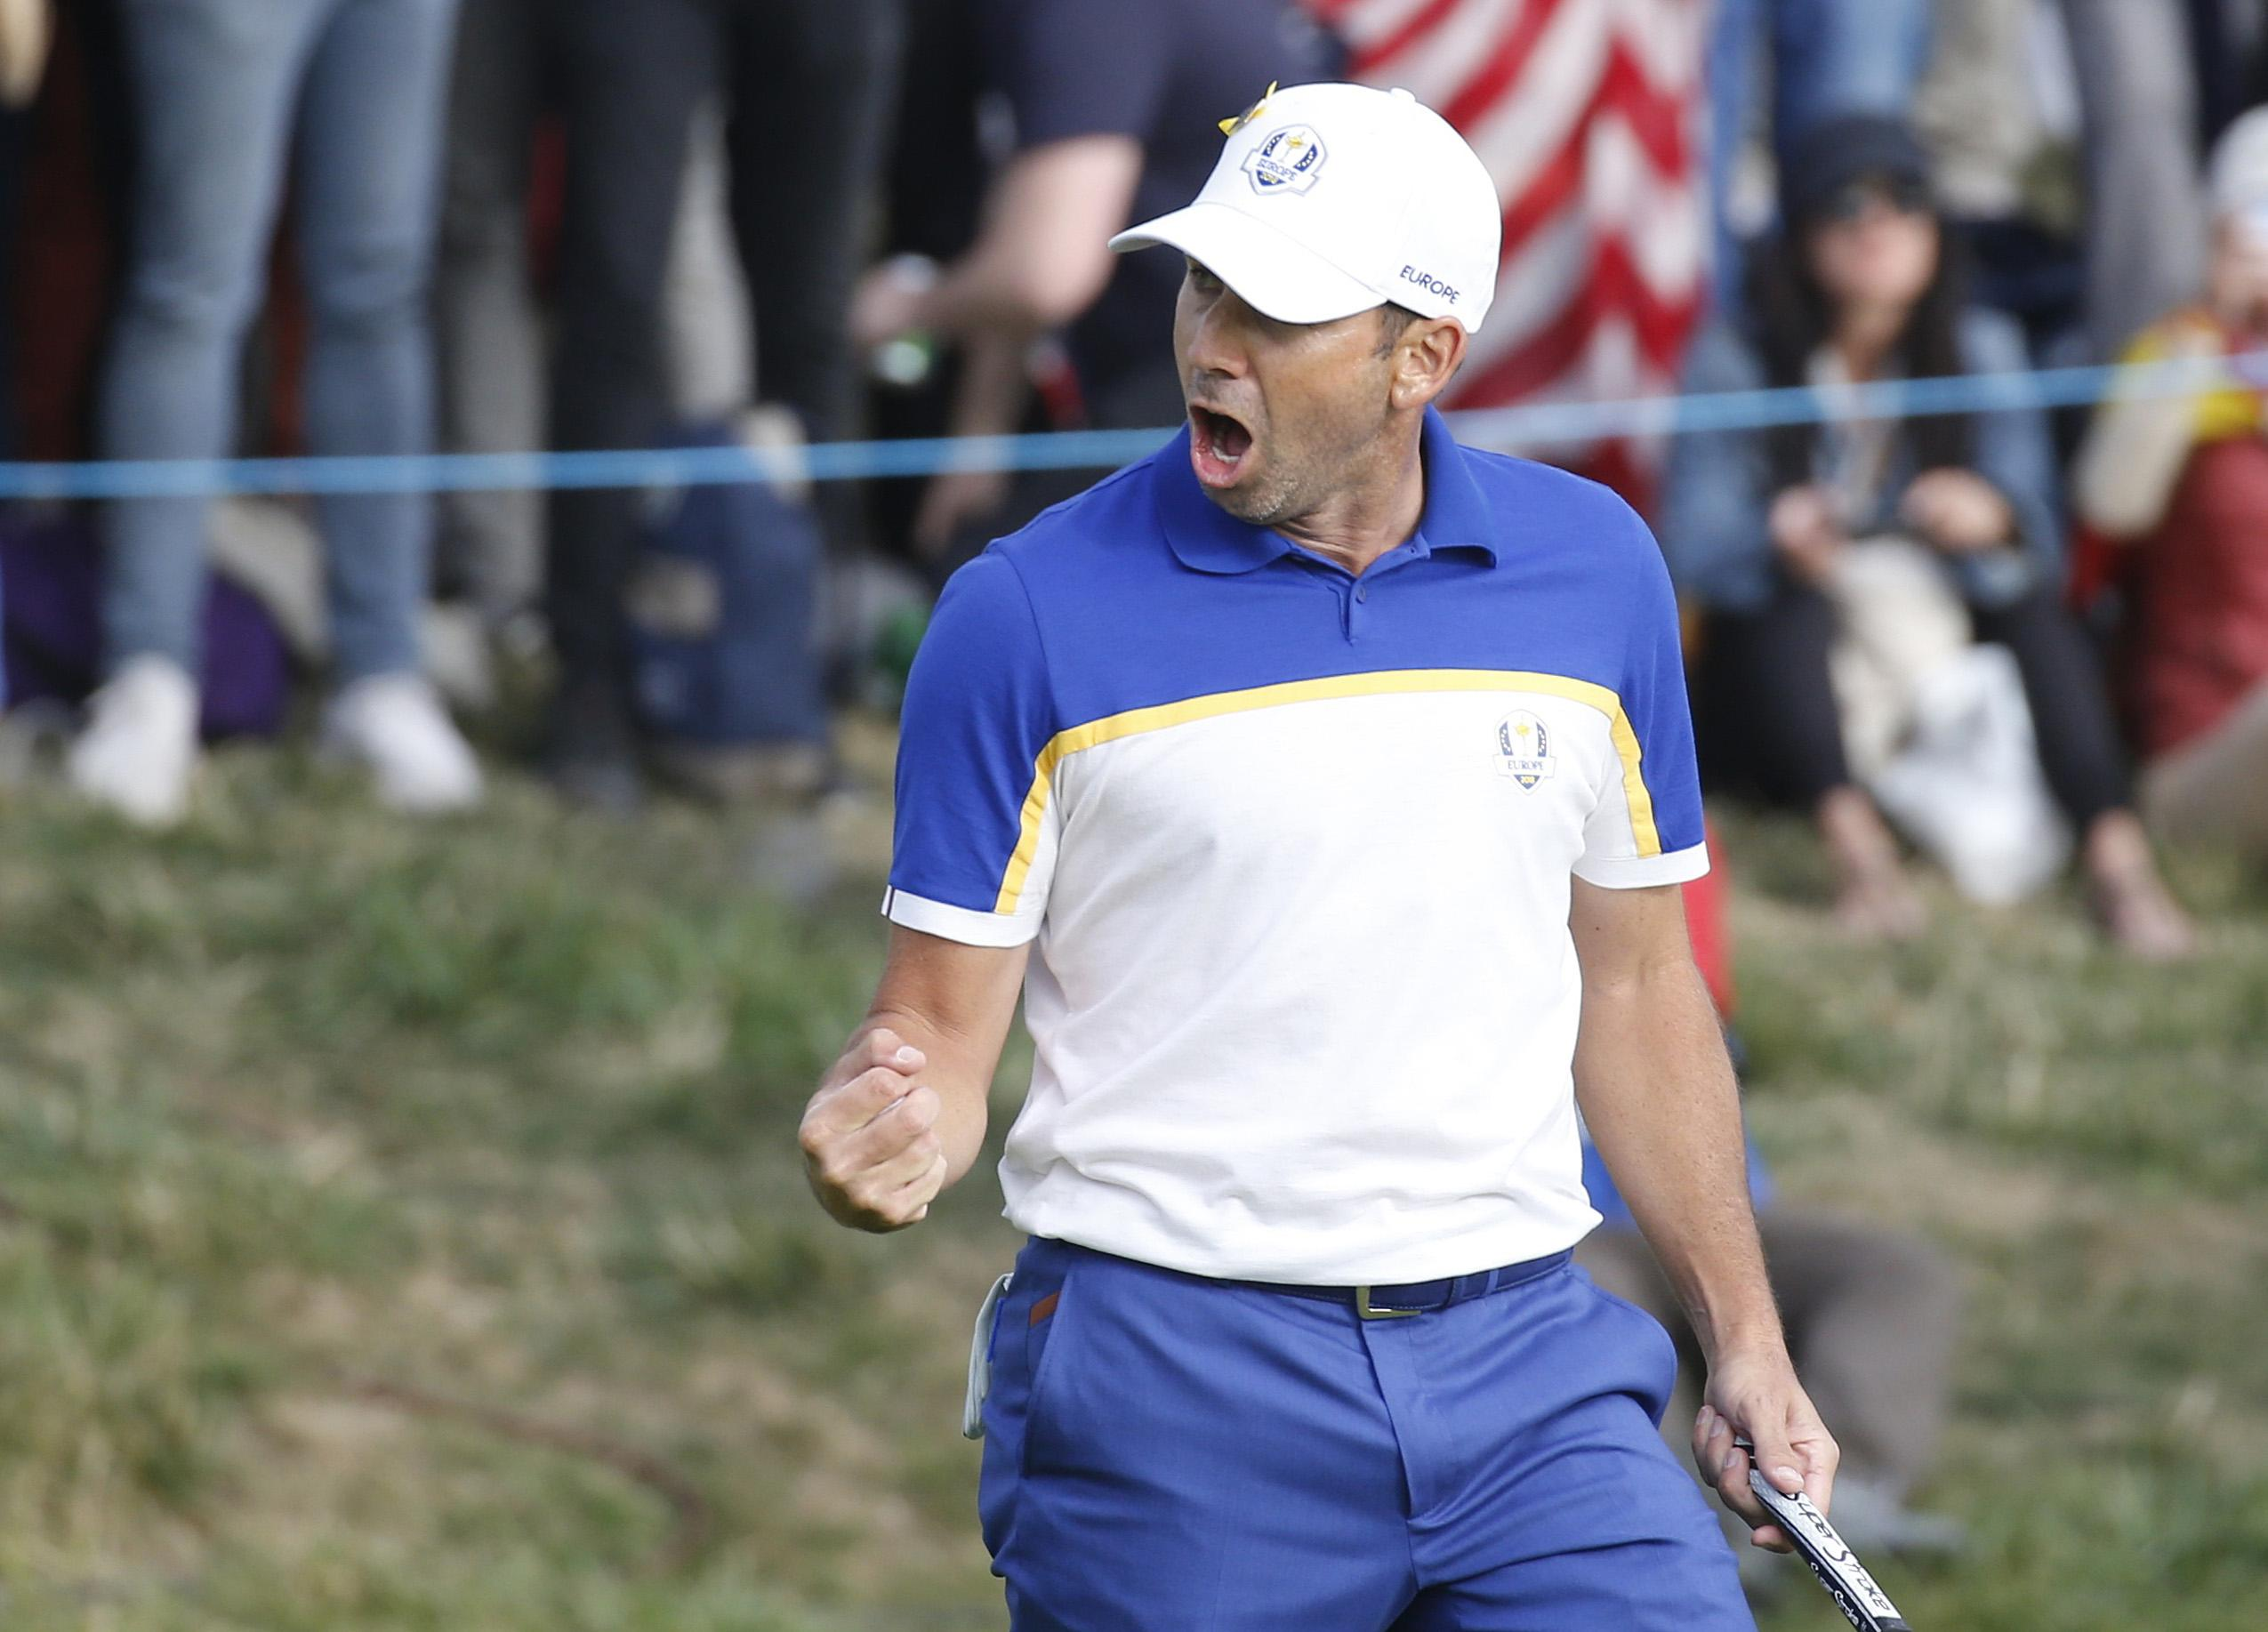 Sergio Garcia was pumped up on the final day of play in France